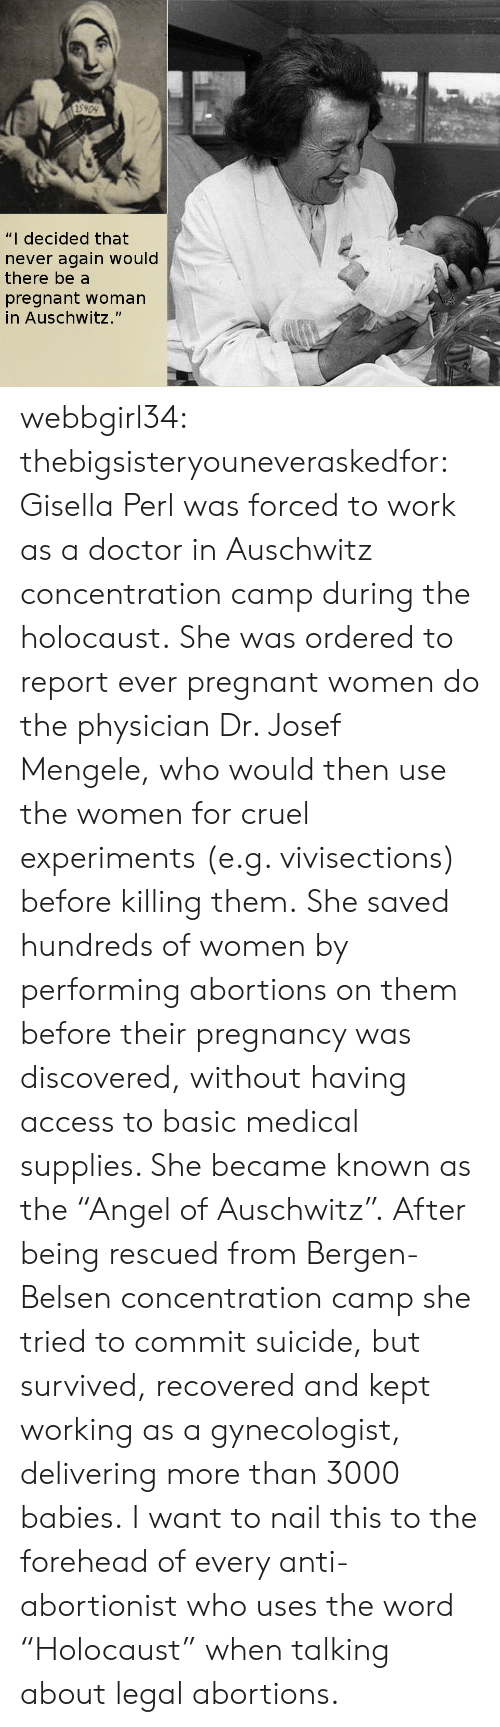 "Doctor, Pregnant, and Target: 5909  ""I decided that  never again would  there be a  pregnant woman  in Auschwitz."" webbgirl34:  thebigsisteryouneveraskedfor:  Gisella Perl was forced to work as a doctor in Auschwitz concentration camp during the holocaust. She was ordered to report ever pregnant women do the physician Dr. Josef Mengele, who would then use the women for cruel experiments (e.g. vivisections) before killing them. She saved hundreds of women by performing abortions on them before their pregnancy was discovered, without having access to basic medical supplies. She became known as the ""Angel of Auschwitz"". After being rescued from Bergen-Belsen concentration camp she tried to commit suicide, but survived, recovered and kept working as a gynecologist, delivering more than 3000 babies.  I want to nail this to the forehead of every anti-abortionist who uses the word ""Holocaust"" when talking about legal abortions."